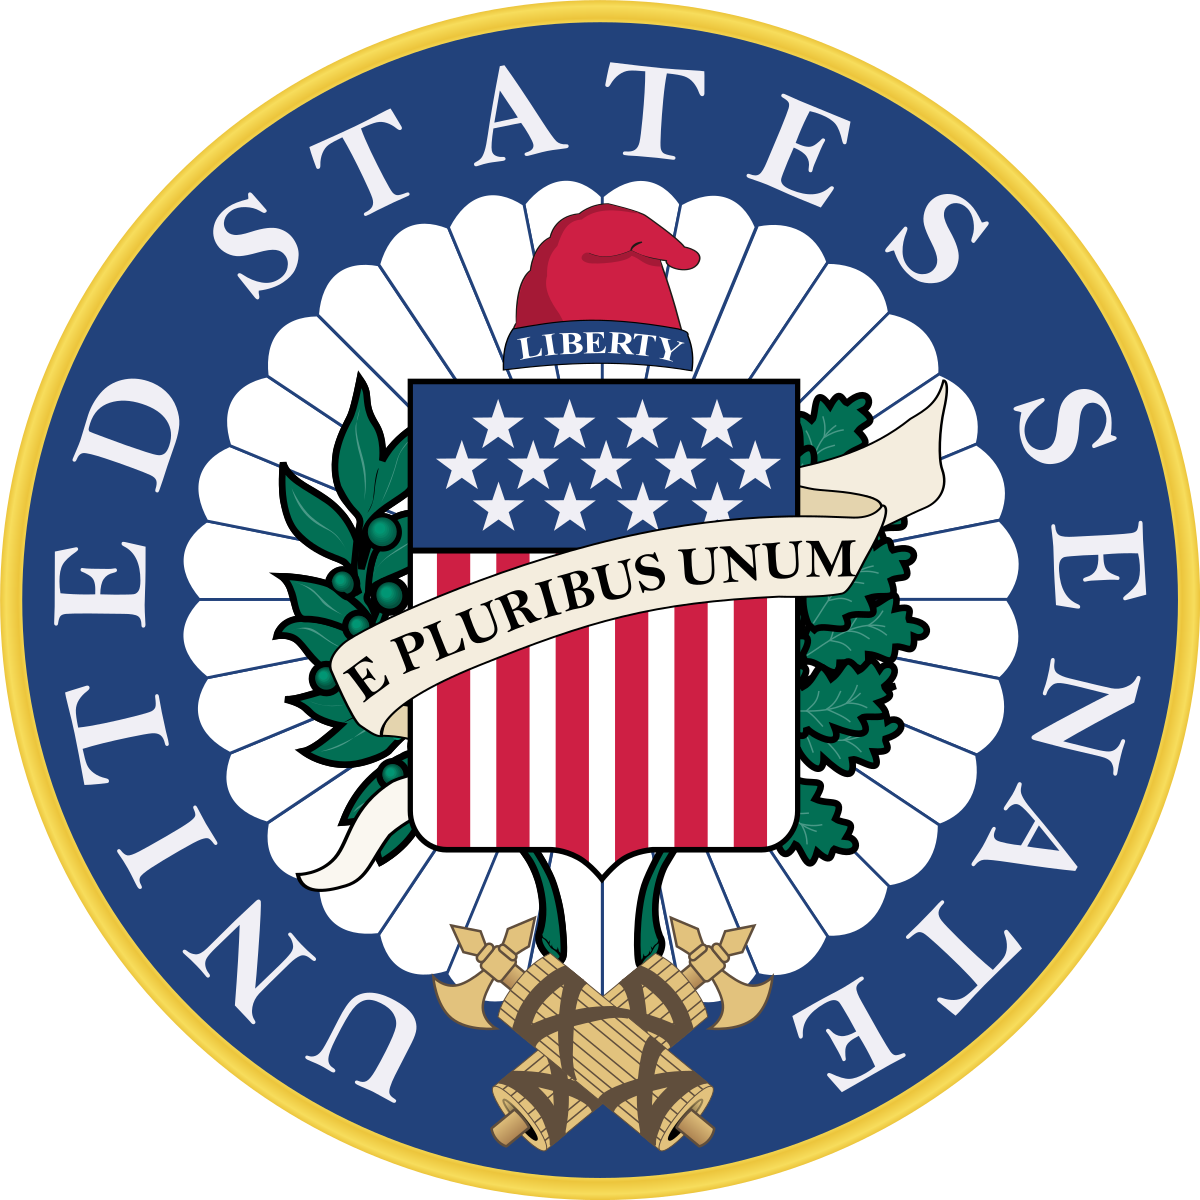 Senate chamber clipart graphic freeuse download United States Senate - Wikipedia graphic freeuse download